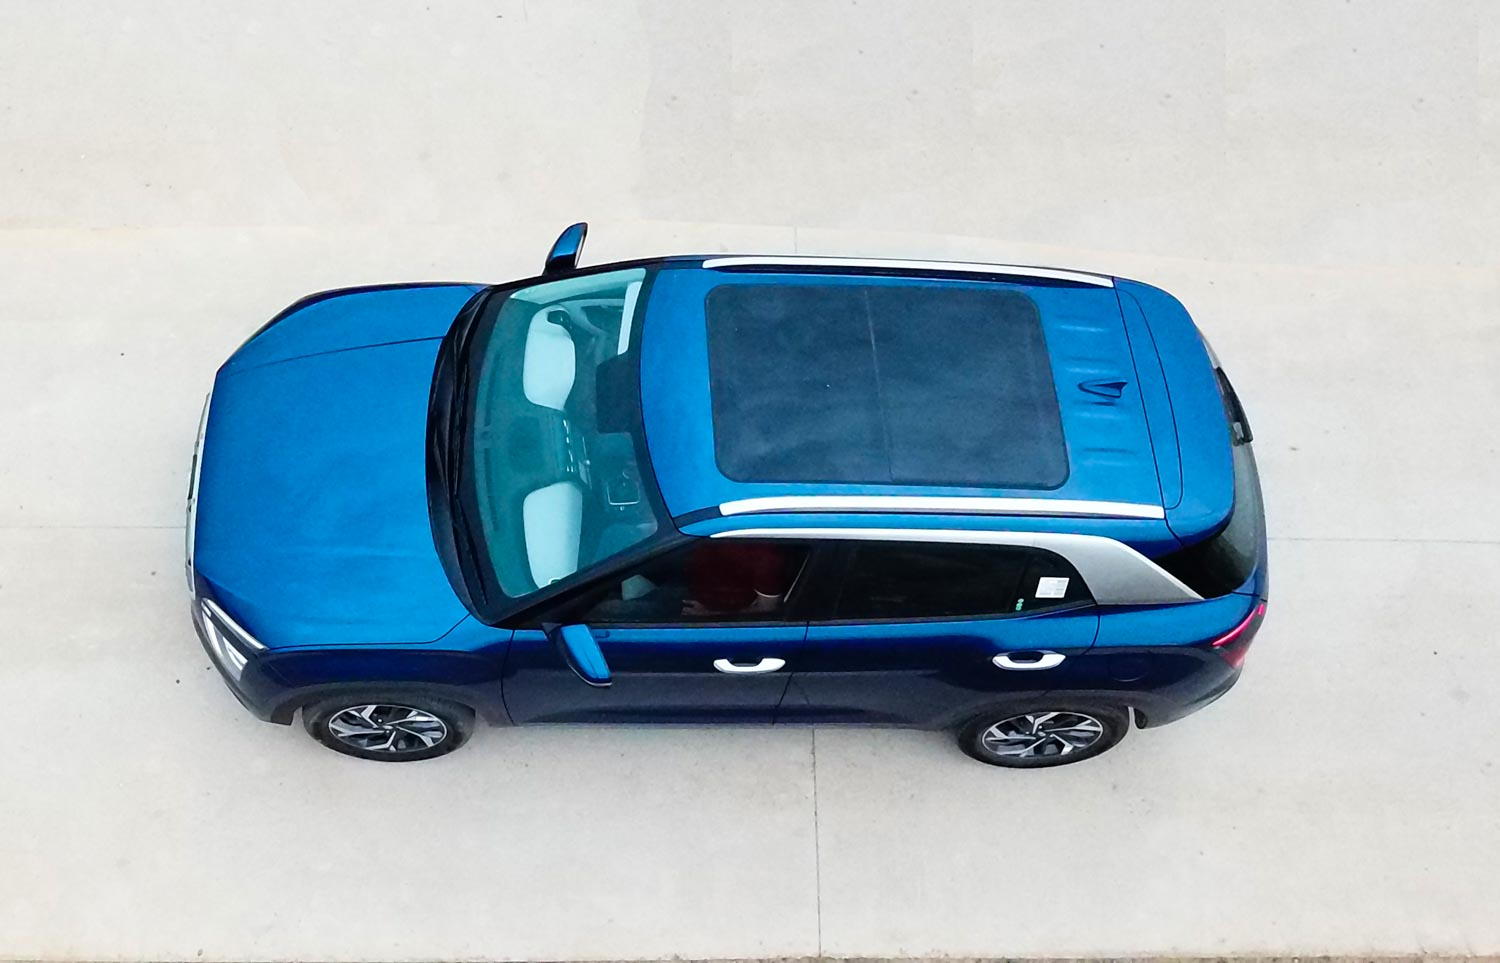 5 Most Affordable Cars With Panoramic Sunroof In India